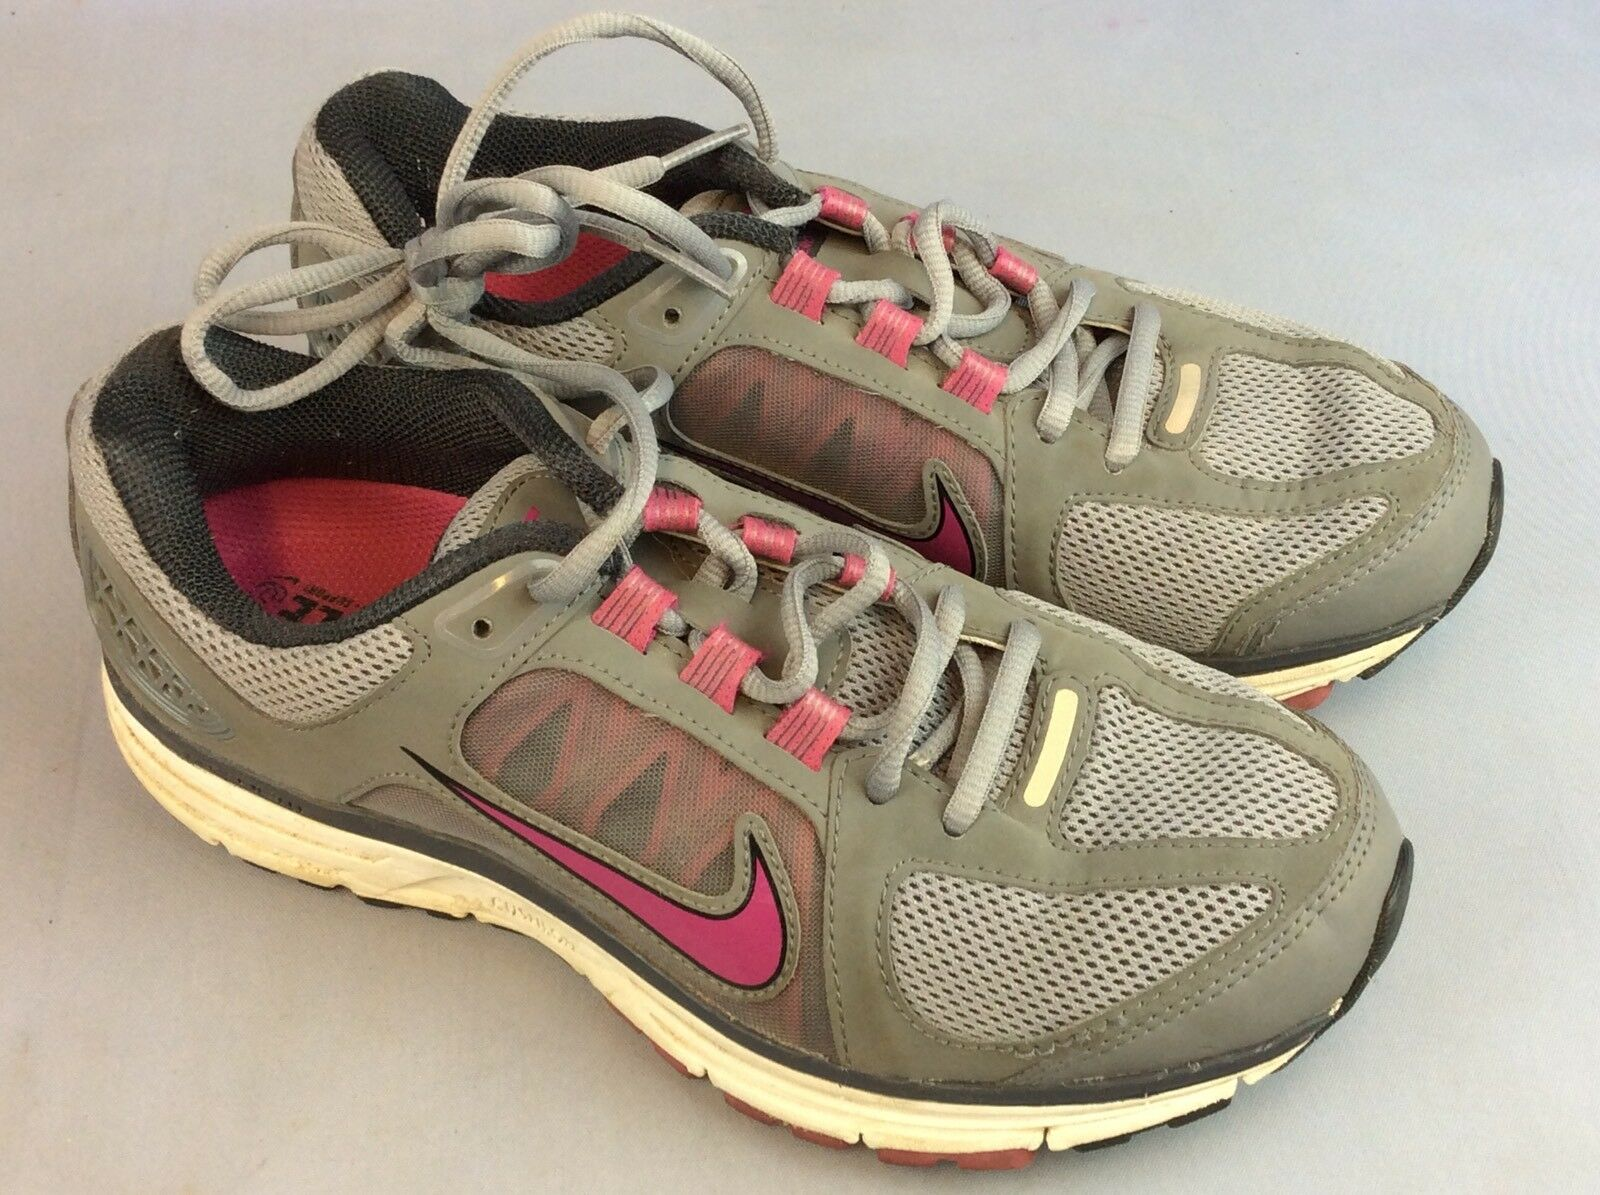 Nike Vomero 7 Woman's Trainers Grey And Pink UK 5.5 Ship Worldwide